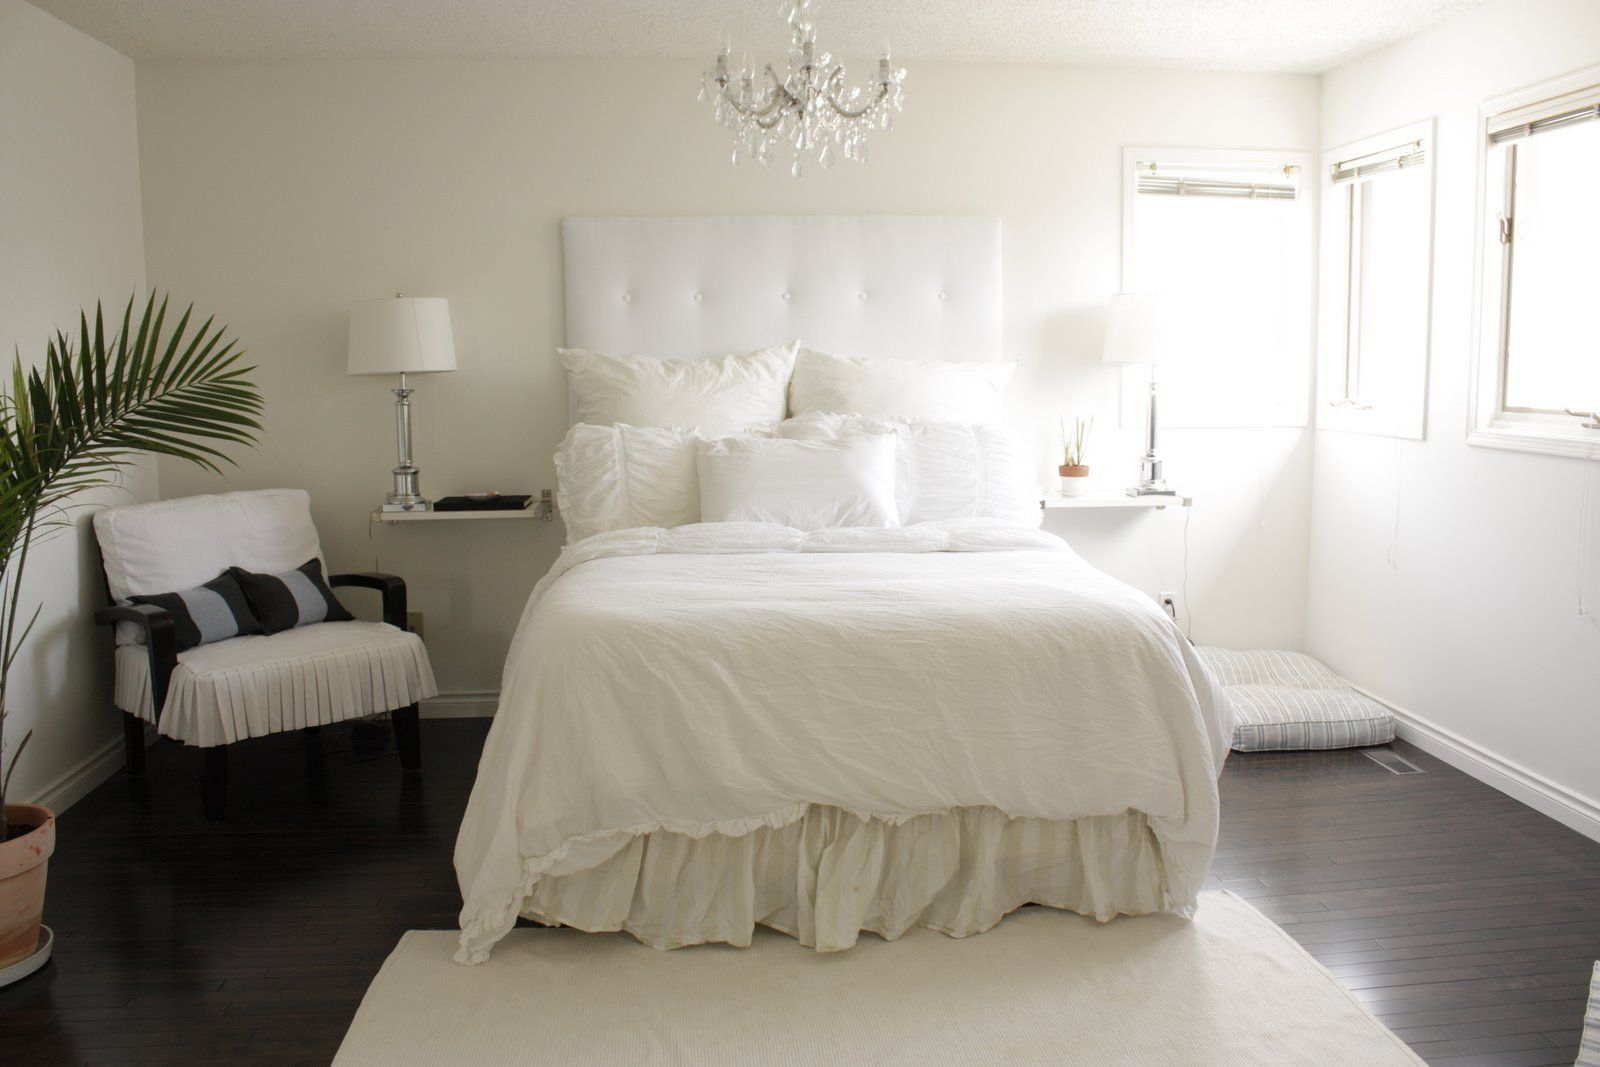 White Bedroom Dark Wood Floors Bedroom Interior Bedroom Design White Bedroom